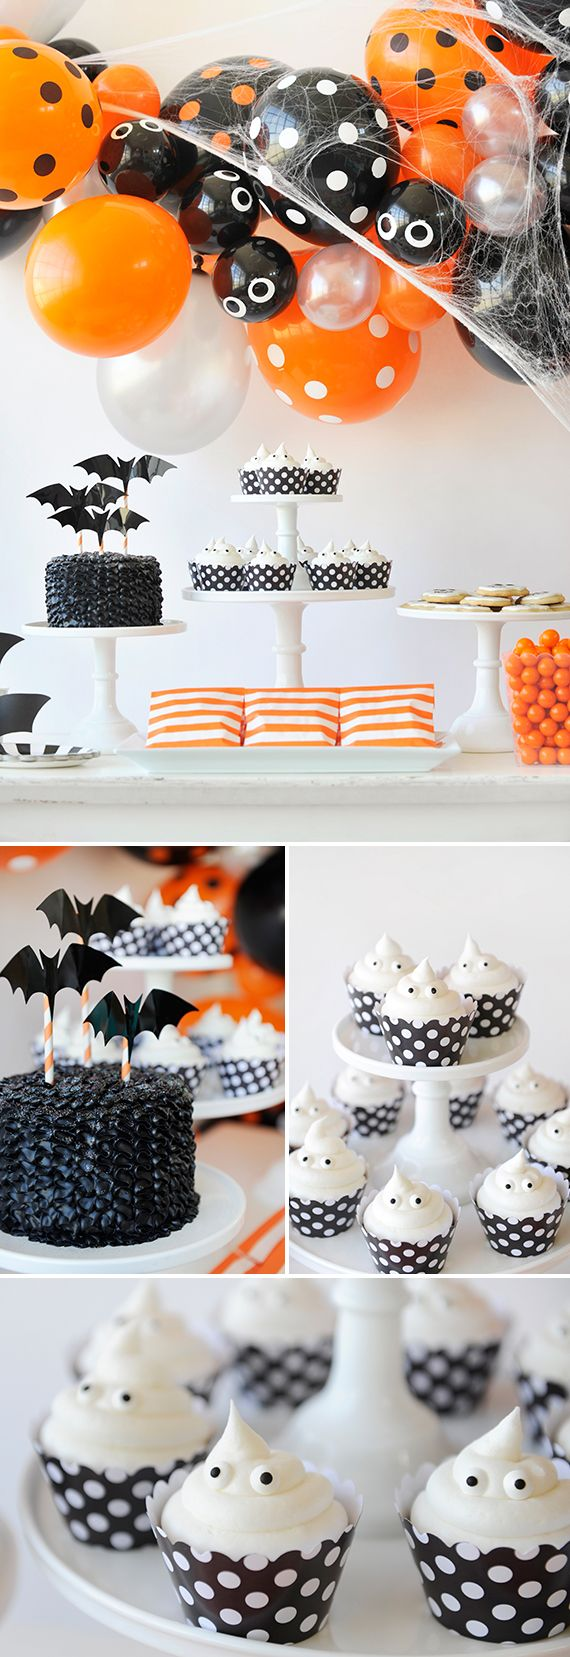 205 best Halloween images on Pinterest